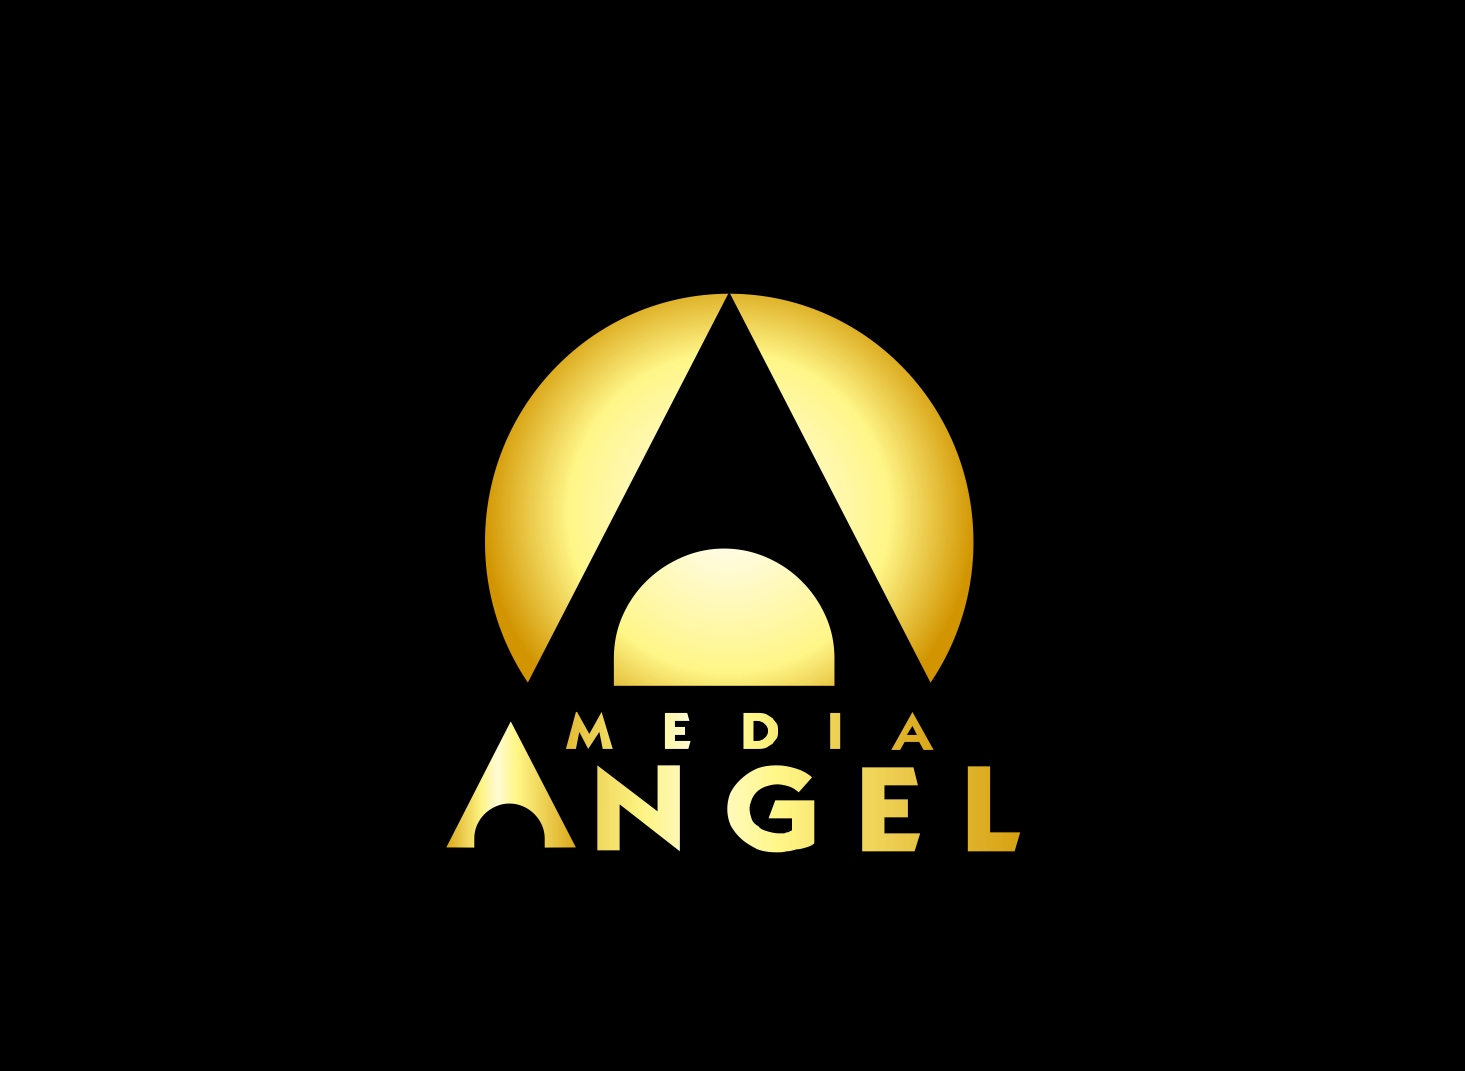 Logo Design by Zdravko Krulj - Entry No. 118 in the Logo Design Contest New Logo Design for Media Angels.